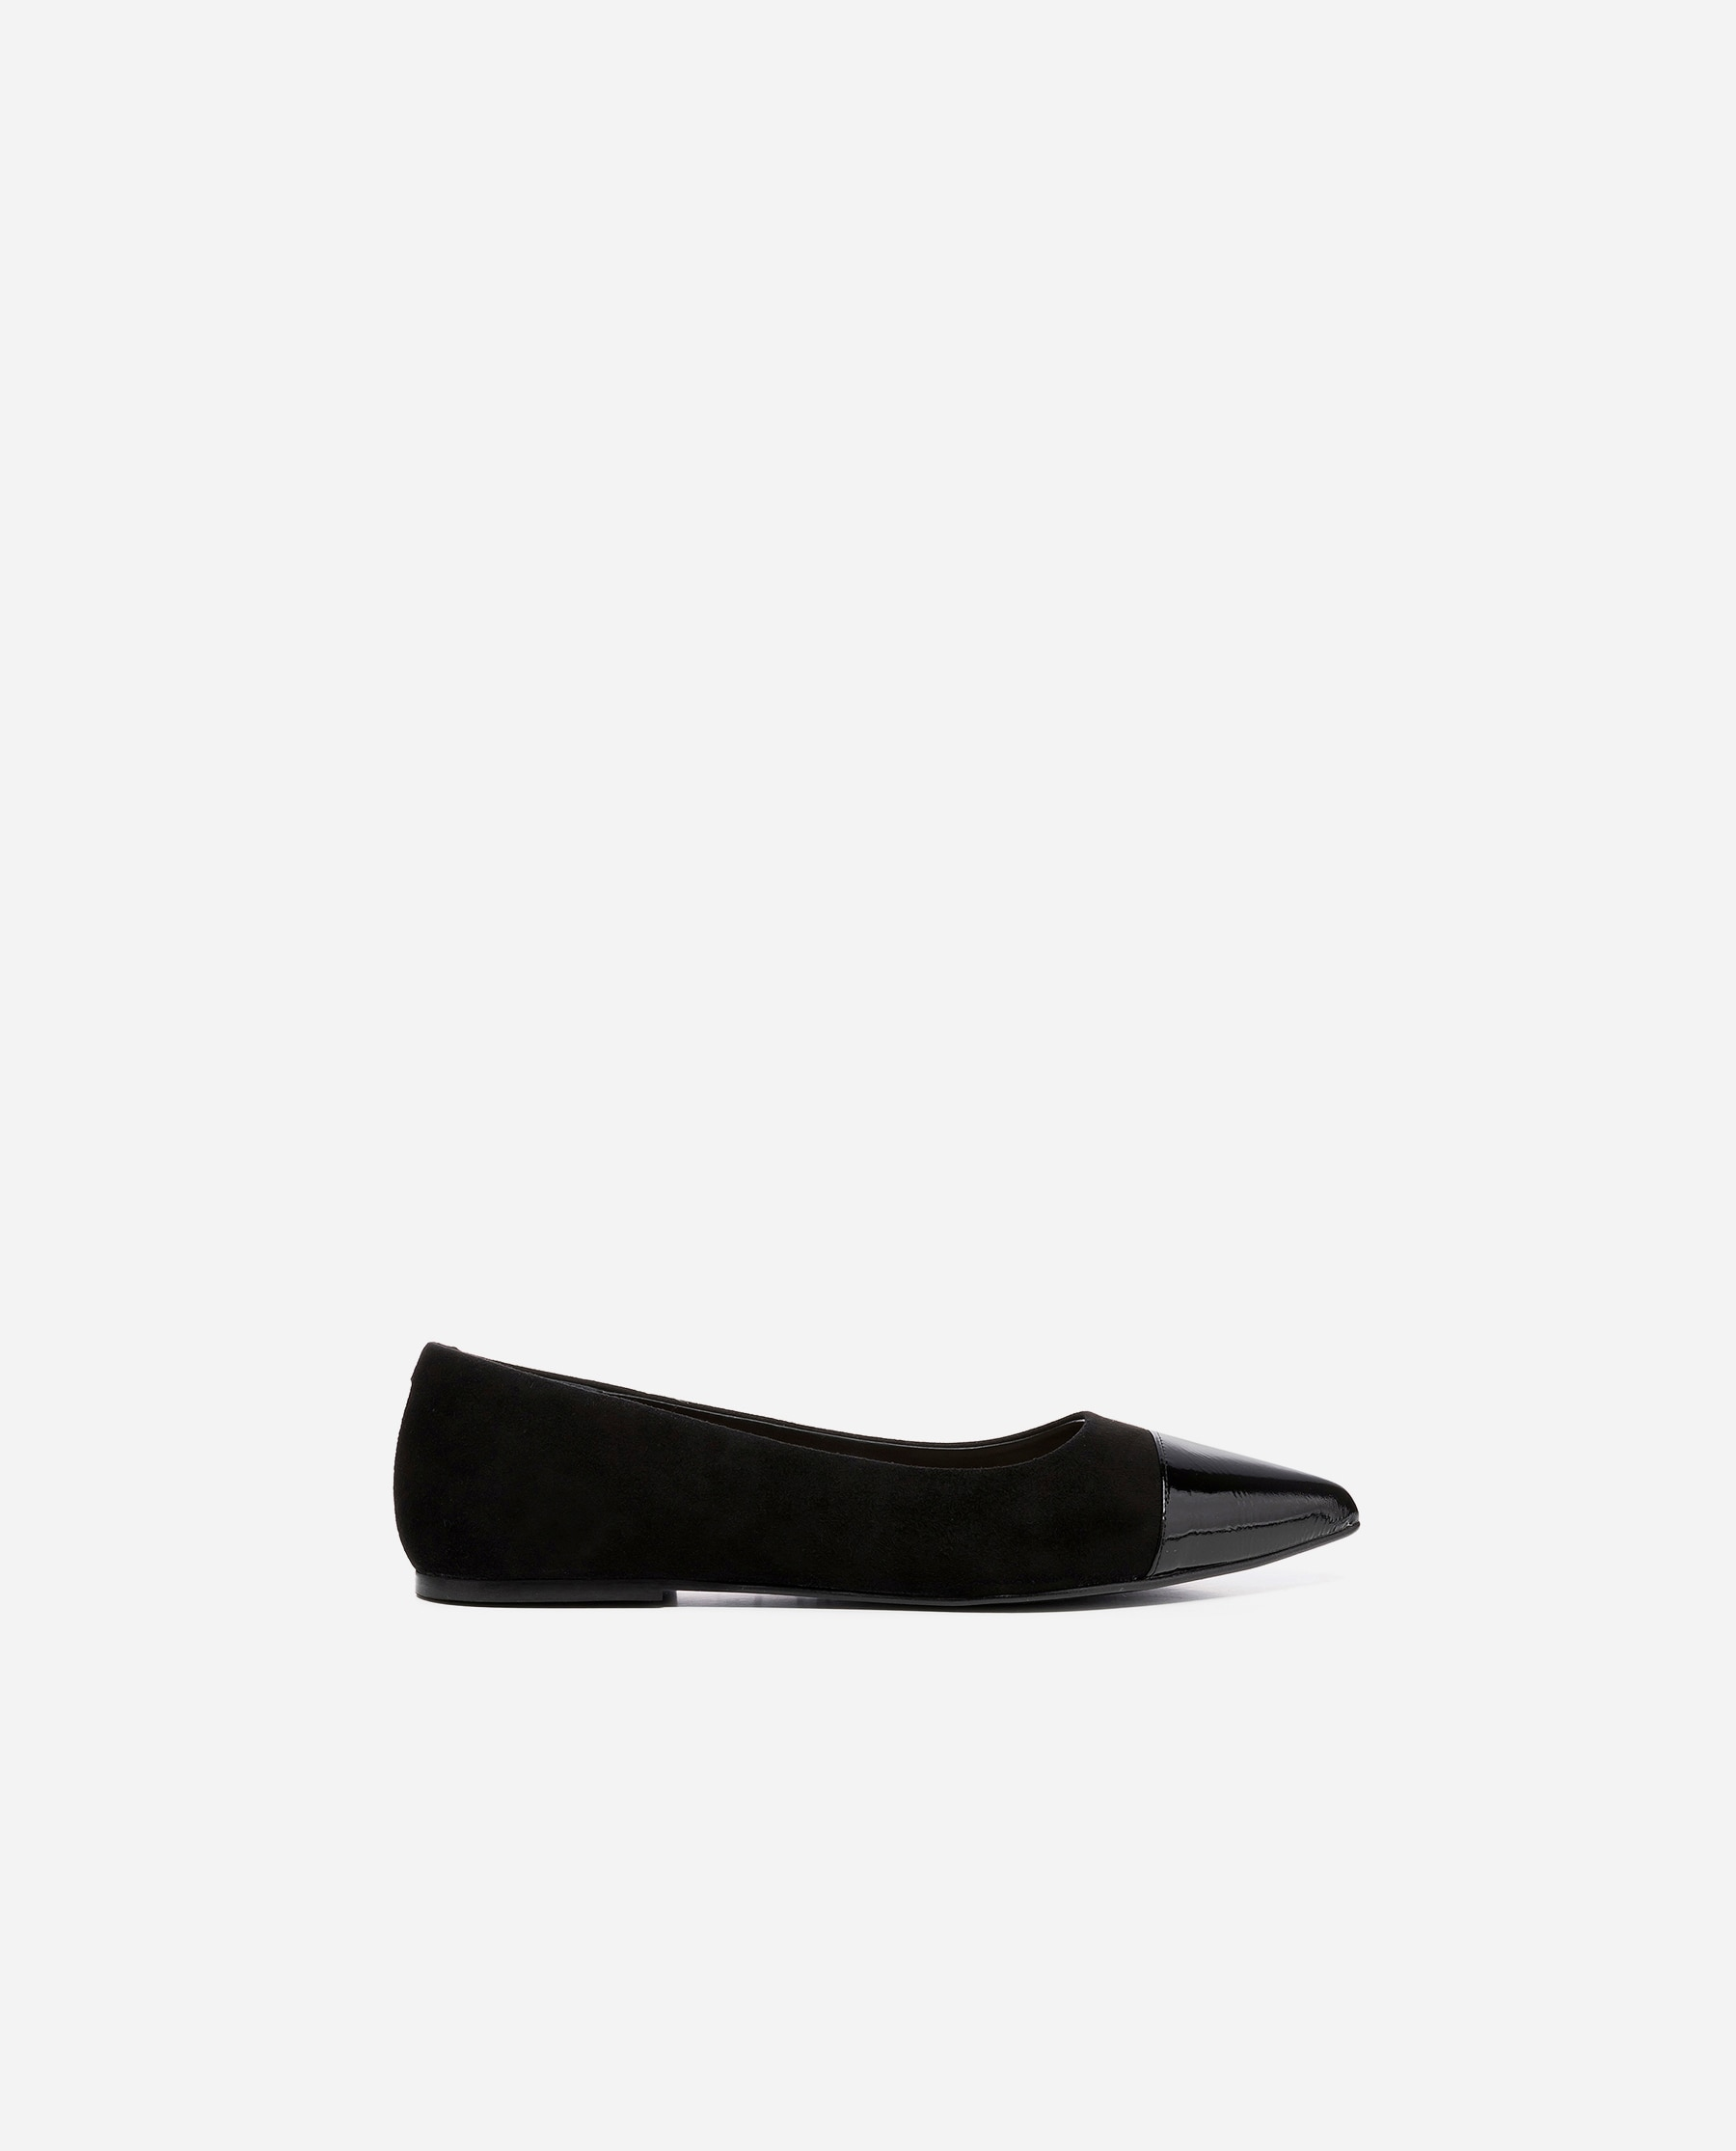 Italia Suede | Patent Leather Black